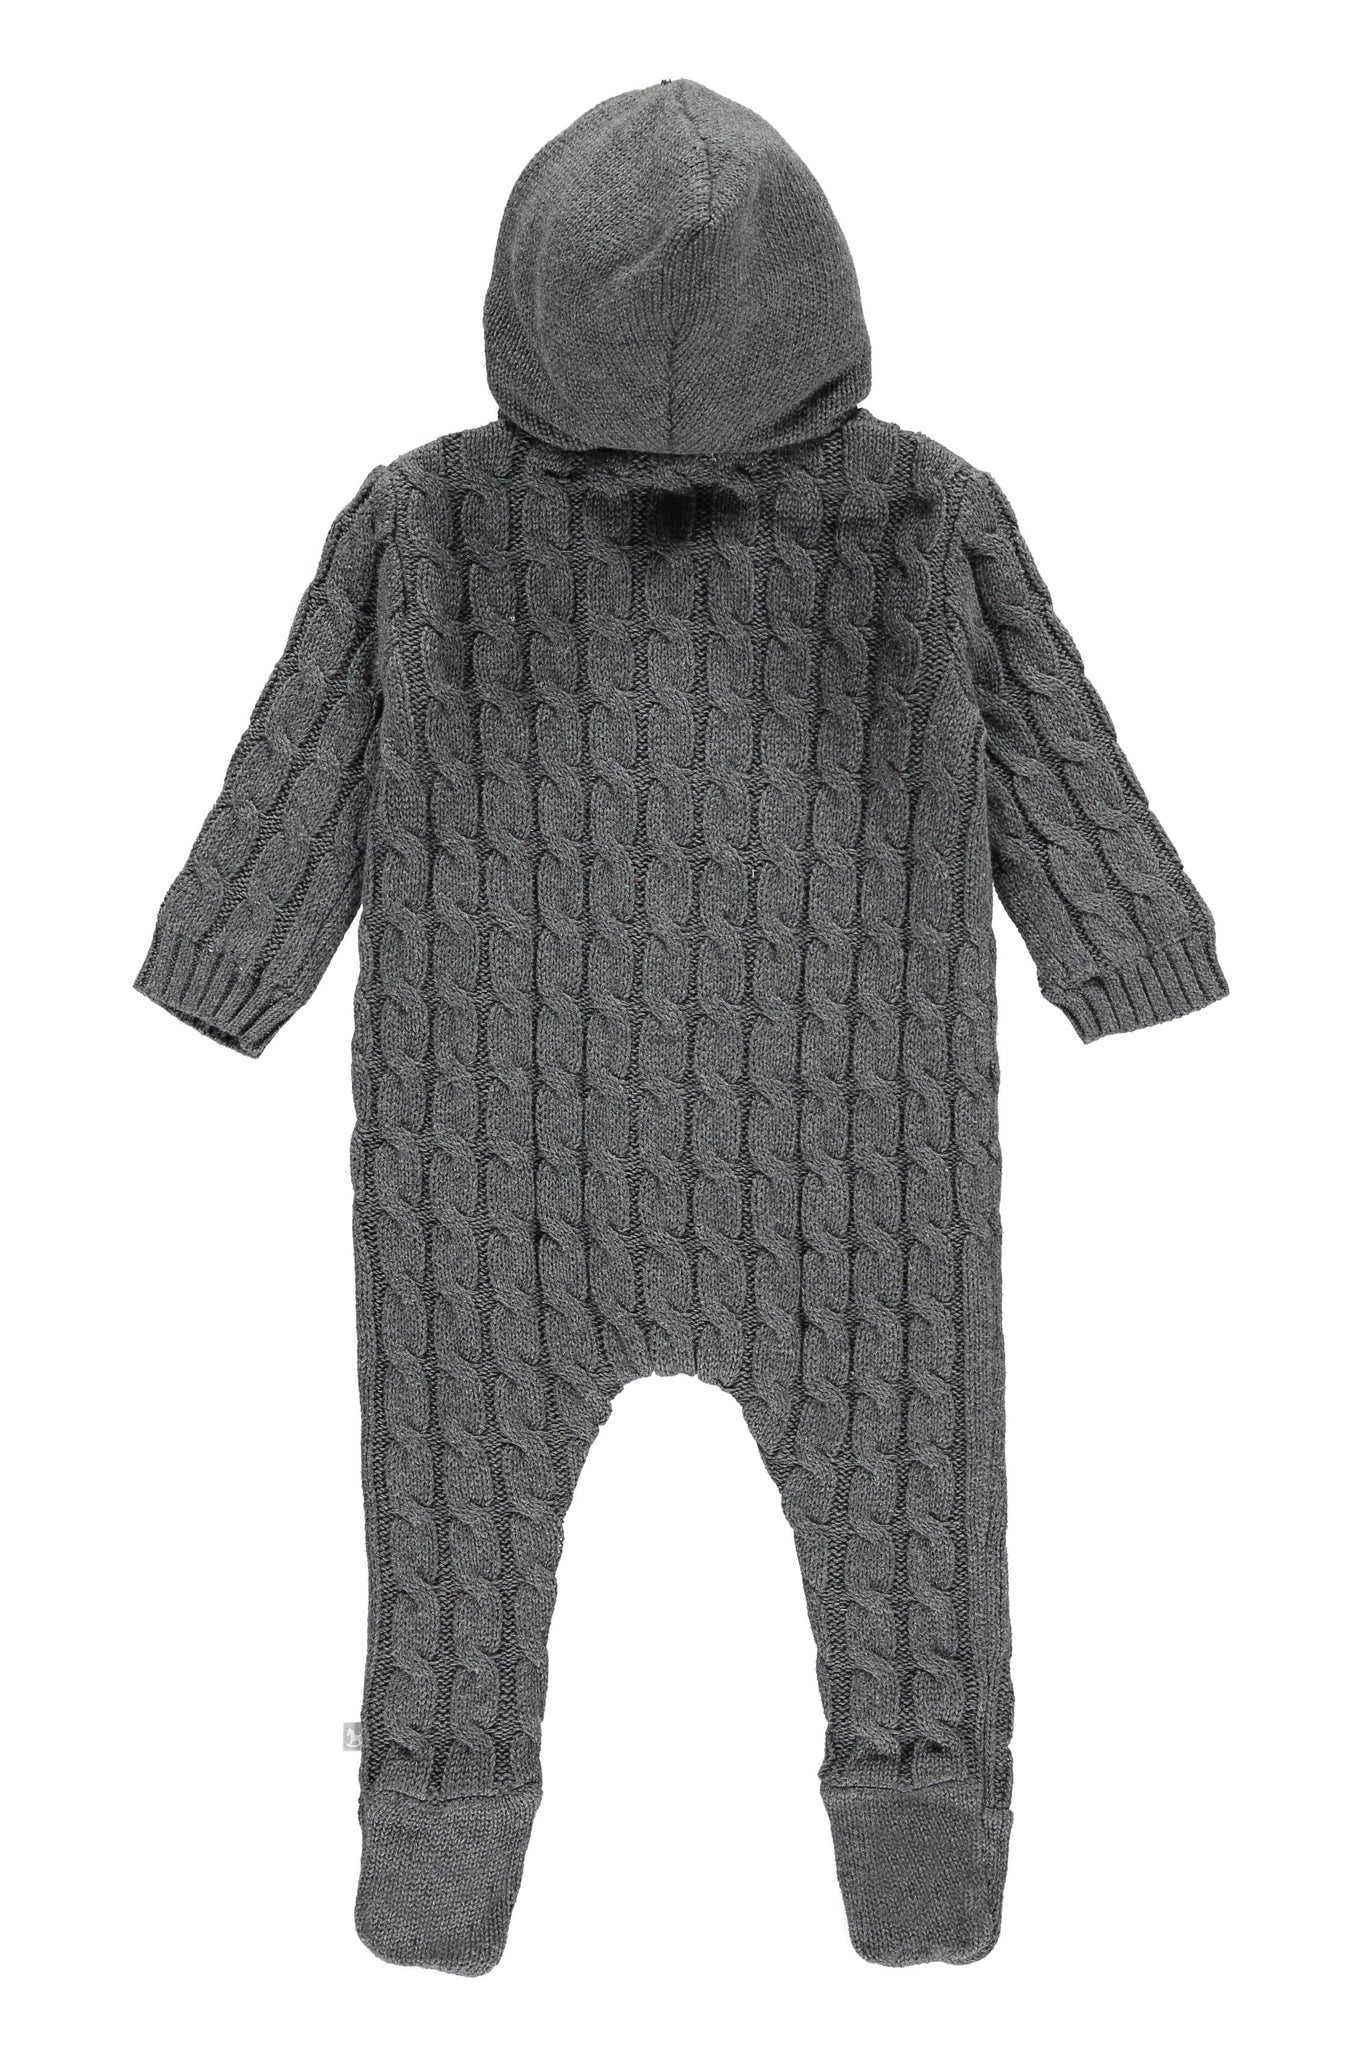 Charcoal Lined Knitted Pramsuit